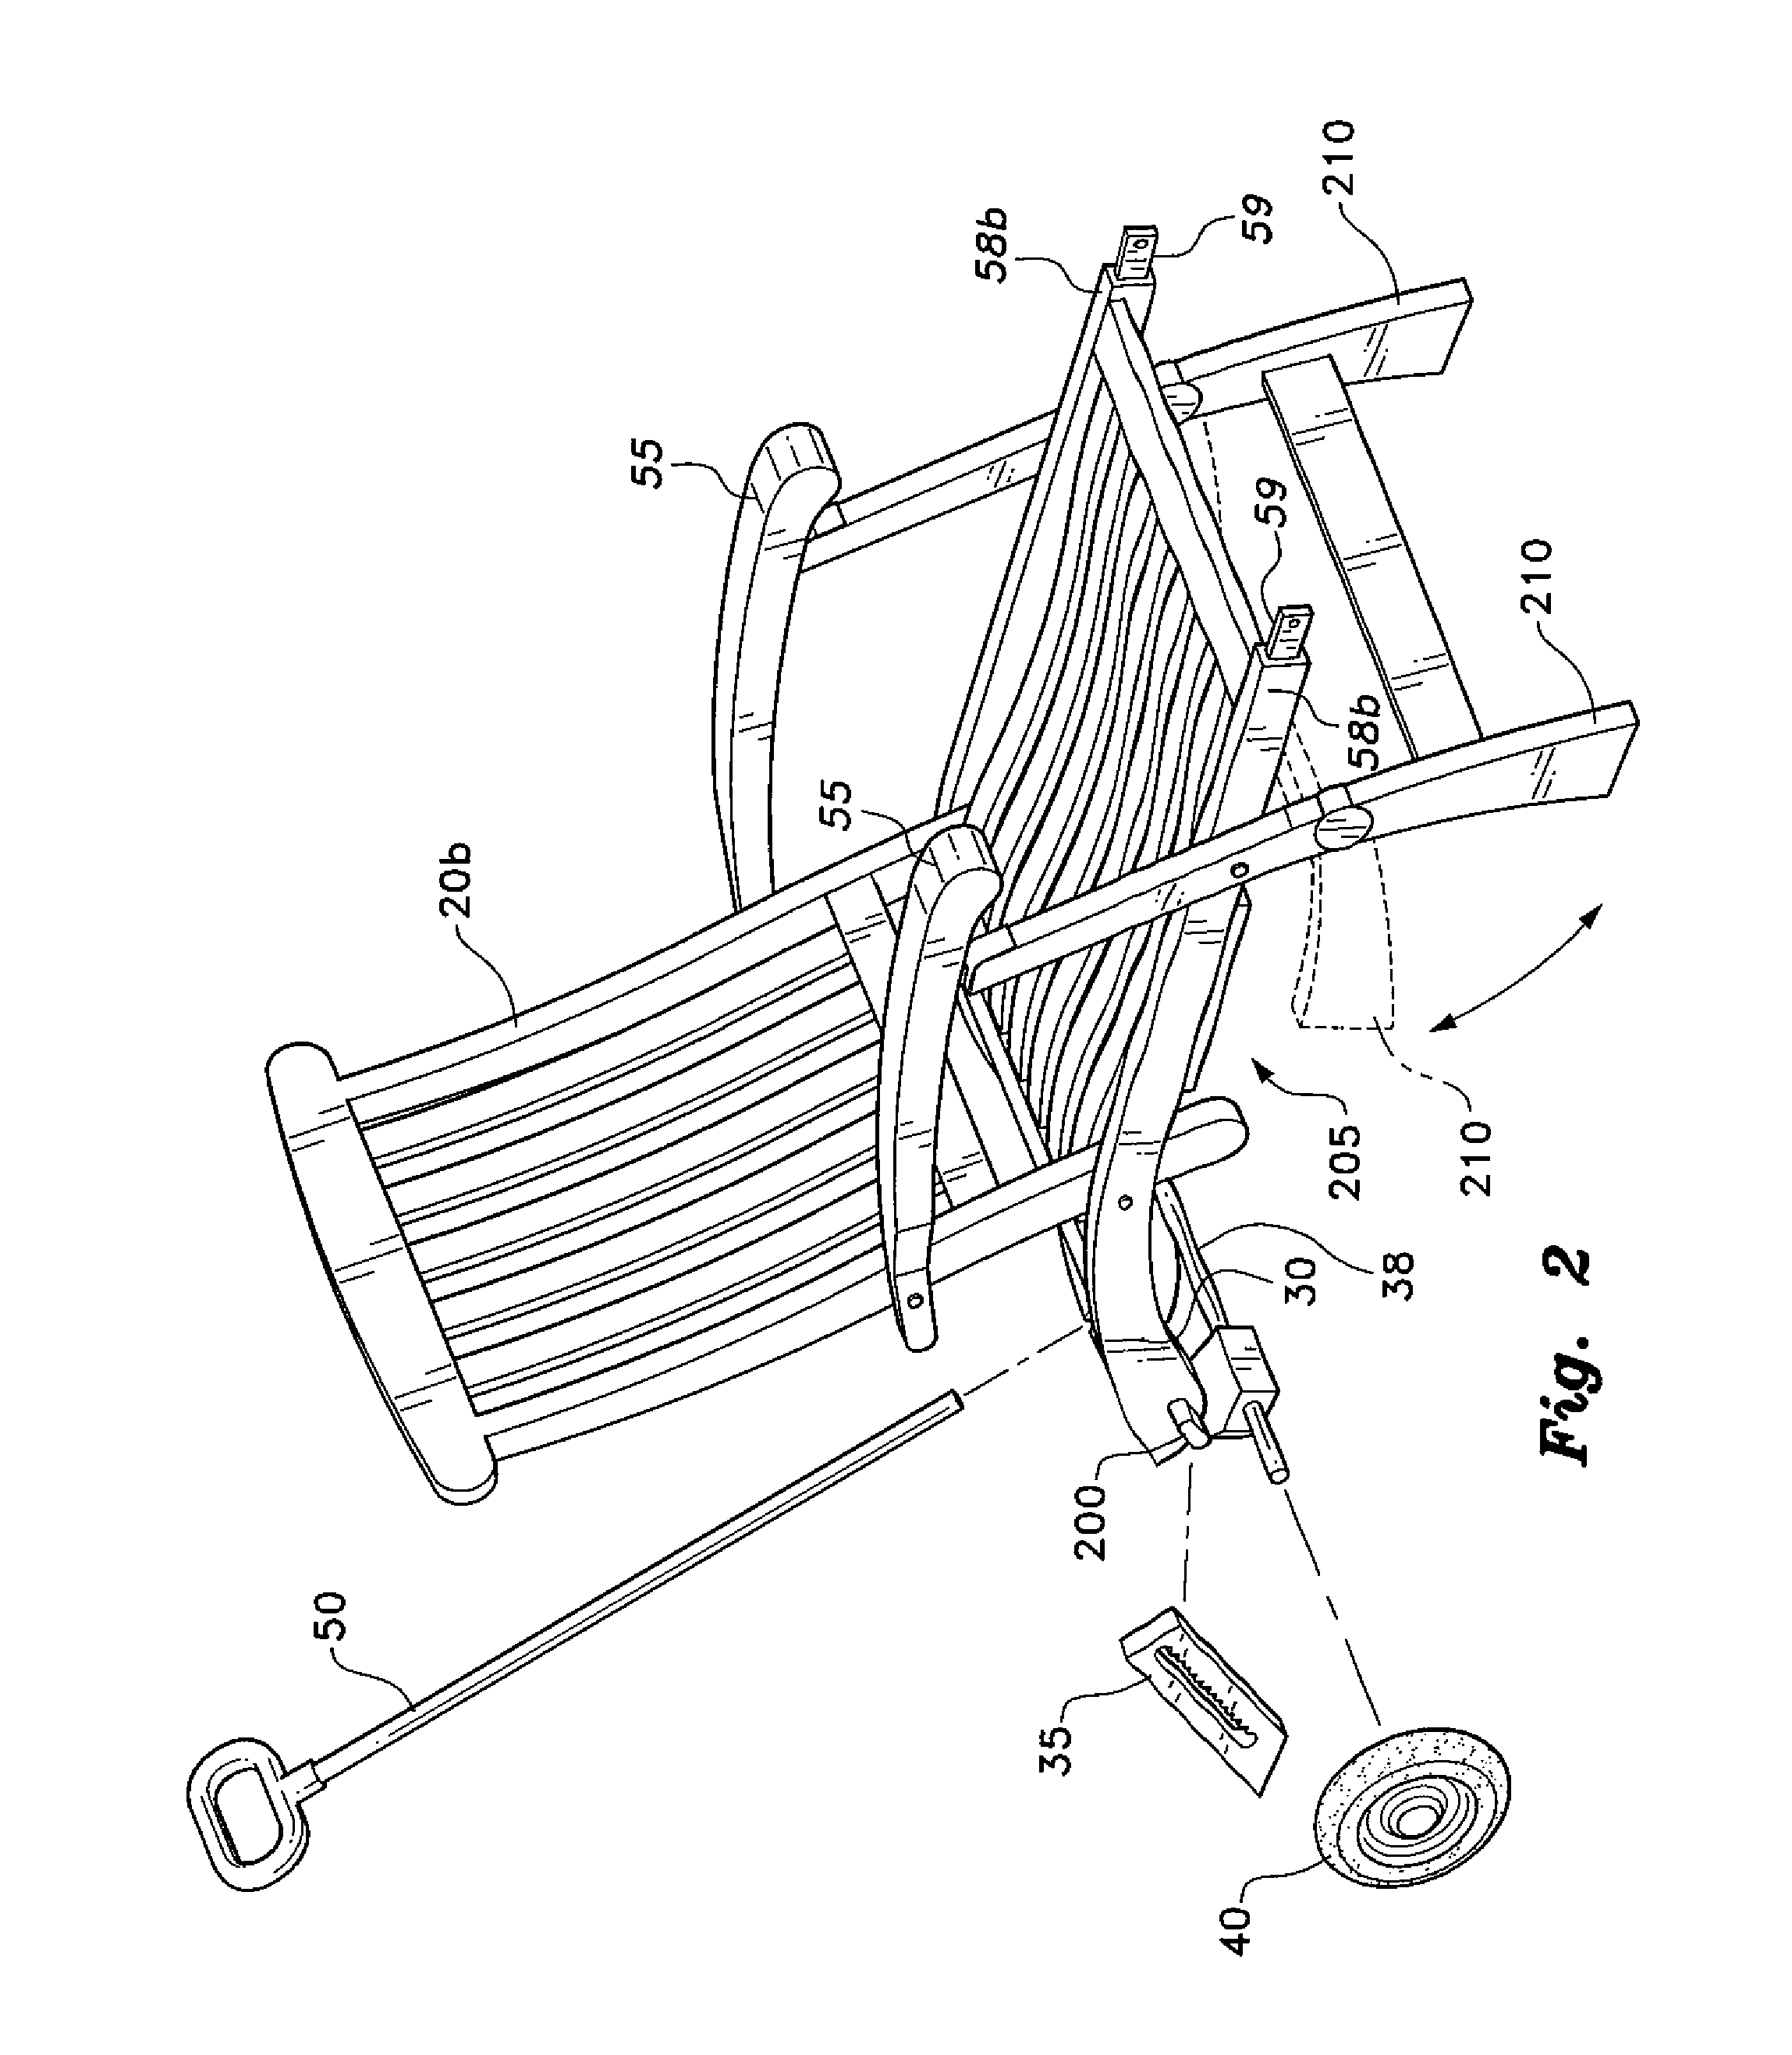 Beach lounge chair drawing - Patent Drawing